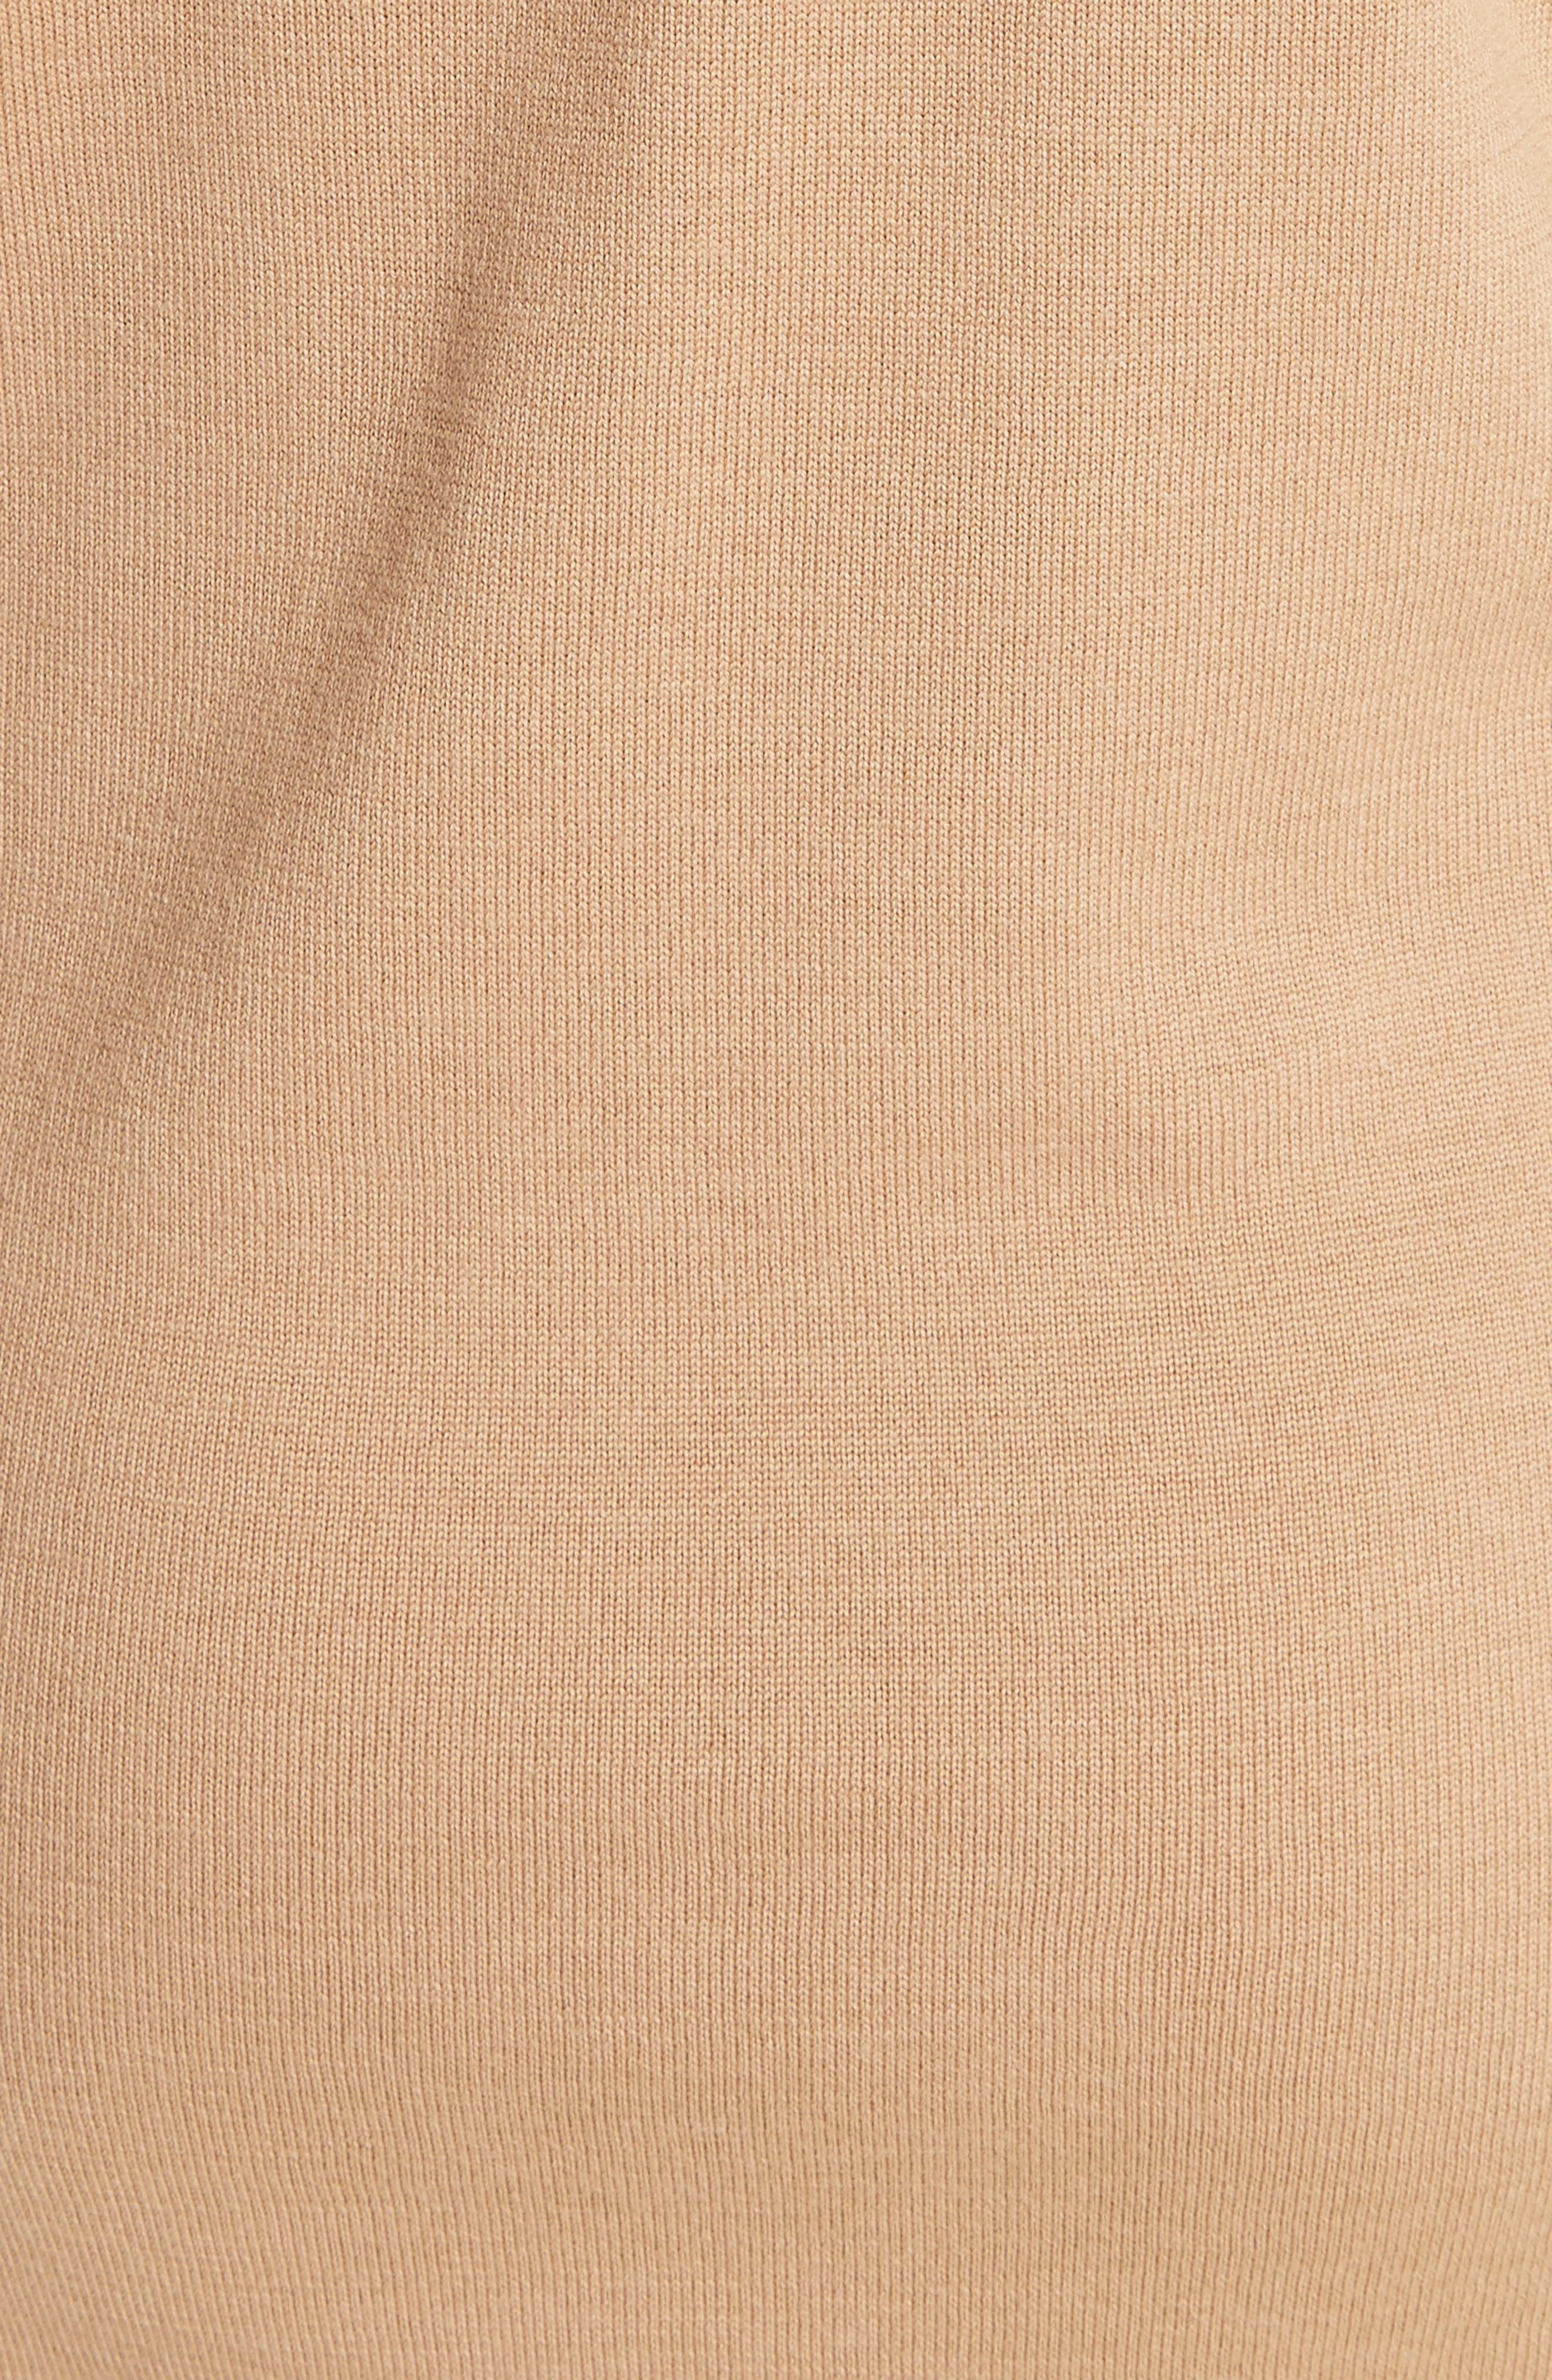 BURBERRY,                             Alewater Elbow Patch Merino Wool Dress,                             Alternate thumbnail 6, color,                             CAMEL